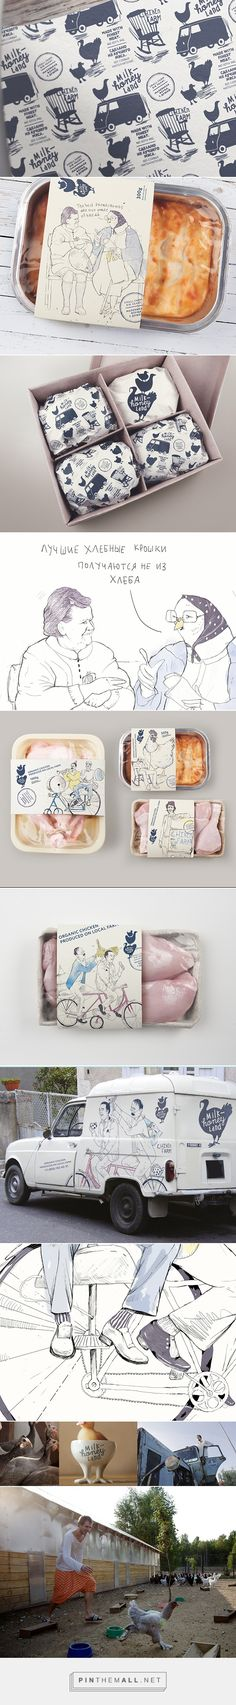 Milk & Honey Land. Depot WPF #packaging on #Behance by Vera Zvereva should bring a smile to your face curated by Packaging Diva PD. Popular fun packaging.